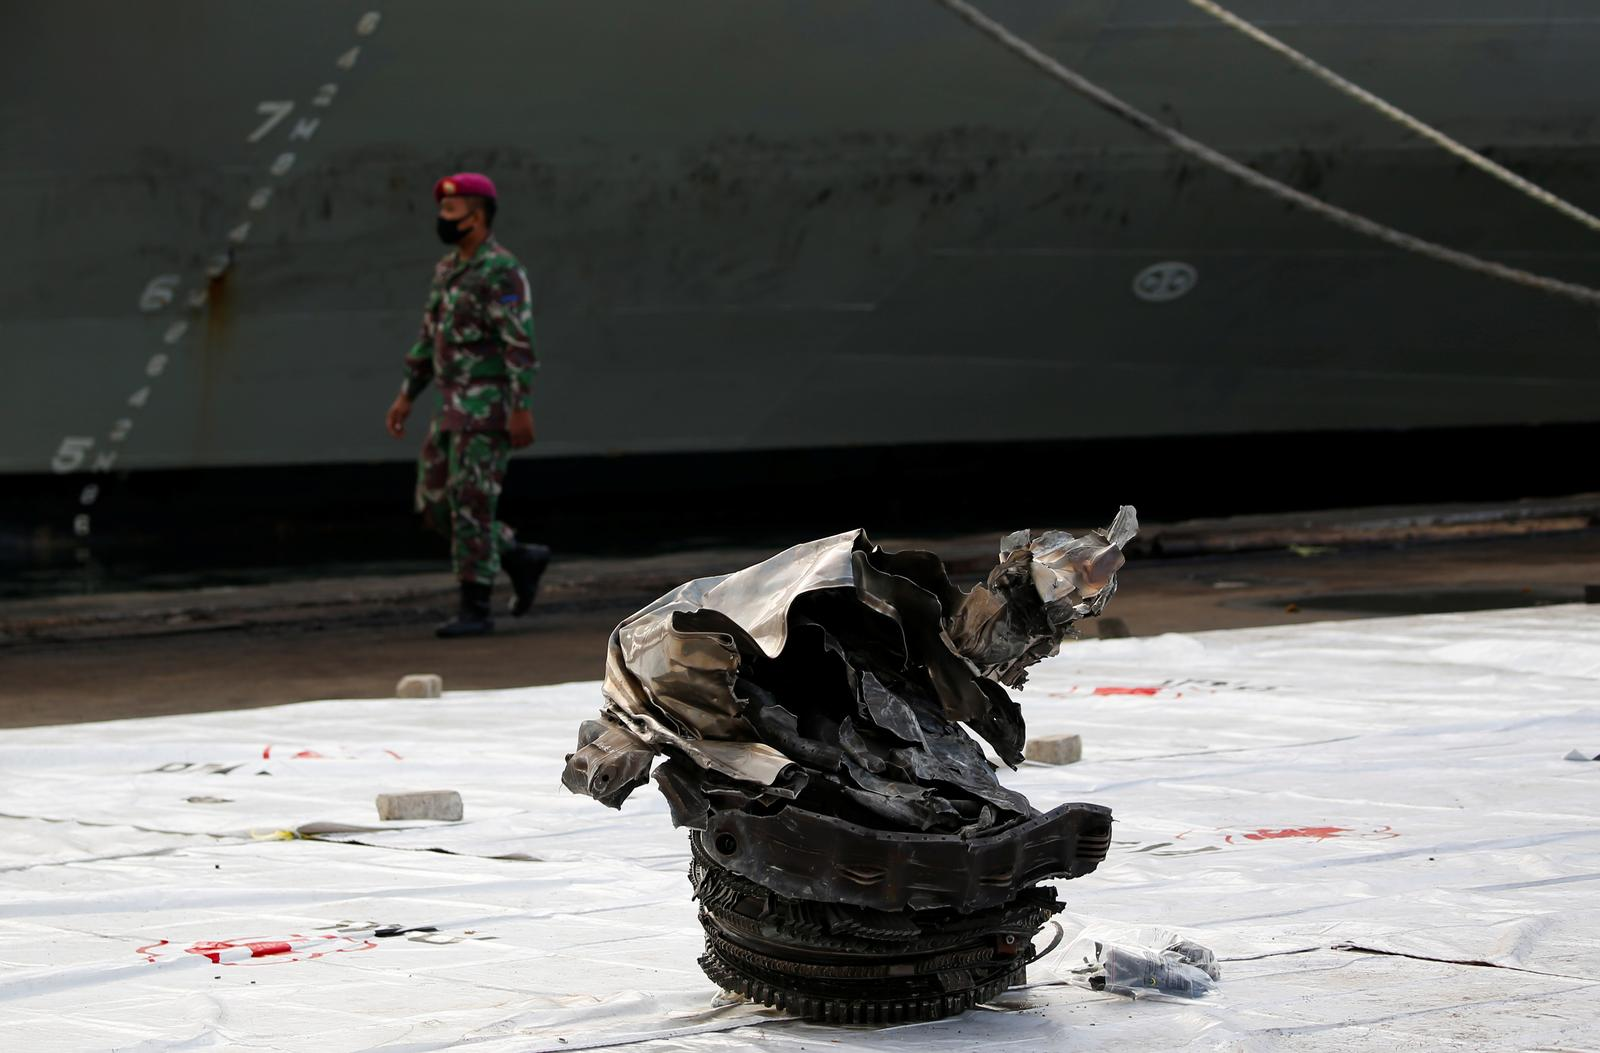 A debris found off the sea which believed as the remain turbine of Sriwijaya Air flight SJ 182, which crashed to the sea, is seen as a member of Indonesian Navy walks at Tanjung Priok port in Jakarta, Indonesia, January 11, 2021. Photo: Reuters